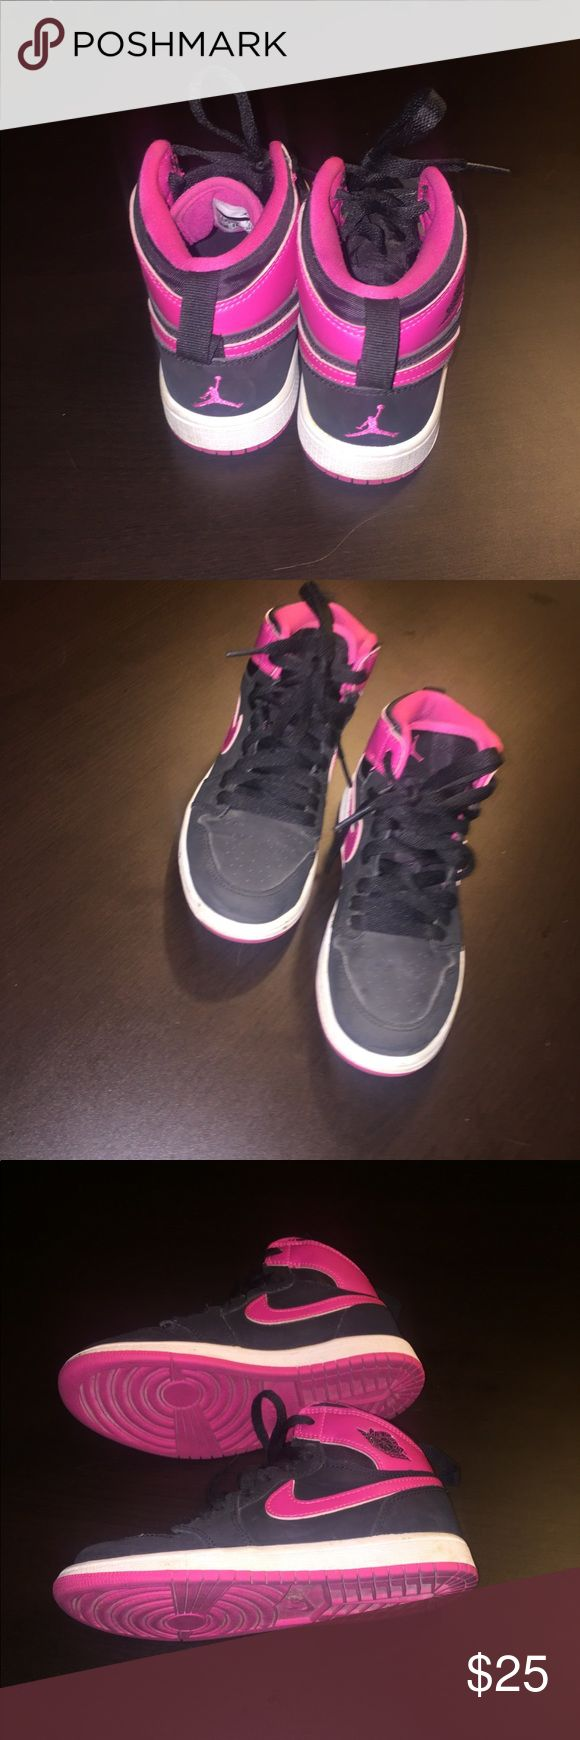 "Nike ""Jordan Air Flights"" black and pink hi-tops. Nike, Jordan Air Flights"" black and pink hi-tops. Girls. Size 1.5 GUC! These were only worn 3 OR 4 times as the ""good"" pair of sneakers. No rips or stains. Smoke and Pet free home! Nike Shoes Sneakers"